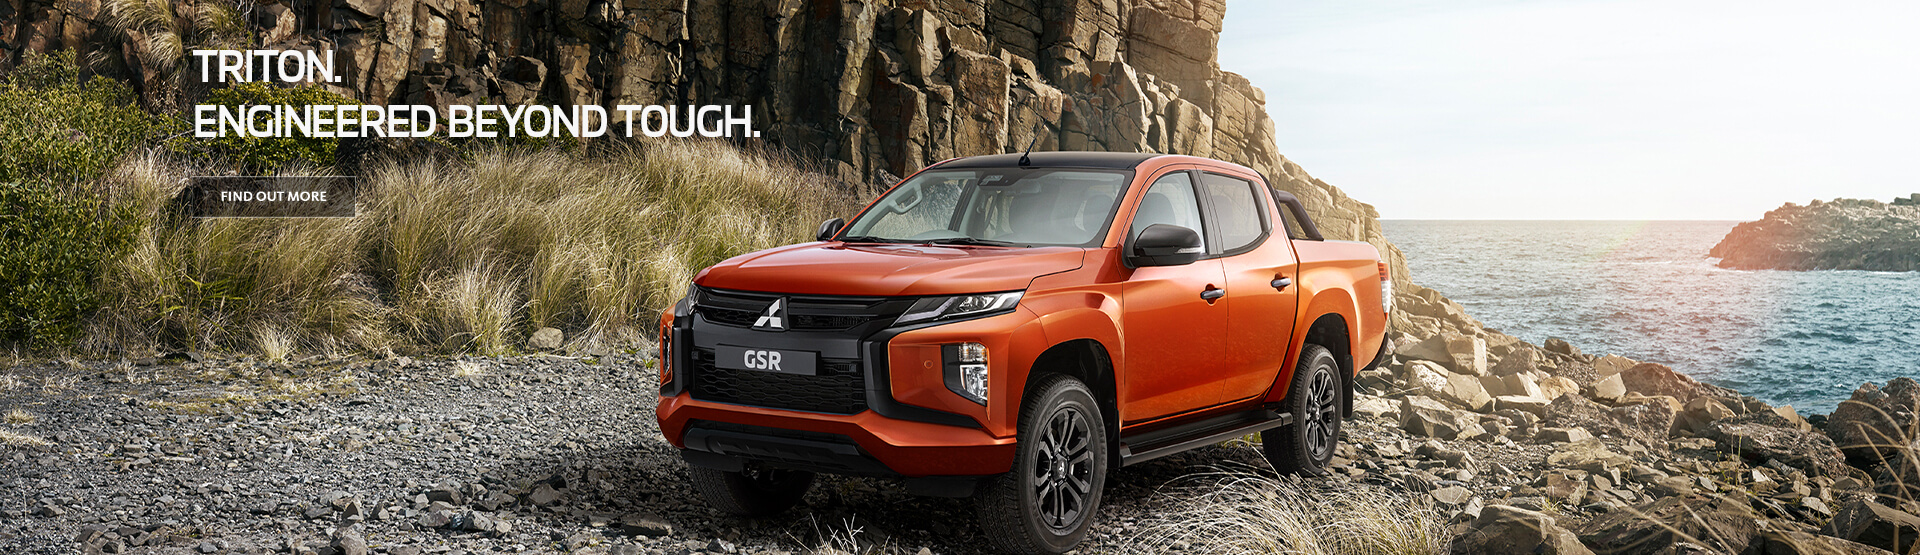 Engineered beyond tough. Find a Triton to suit you. Book a test drive today.